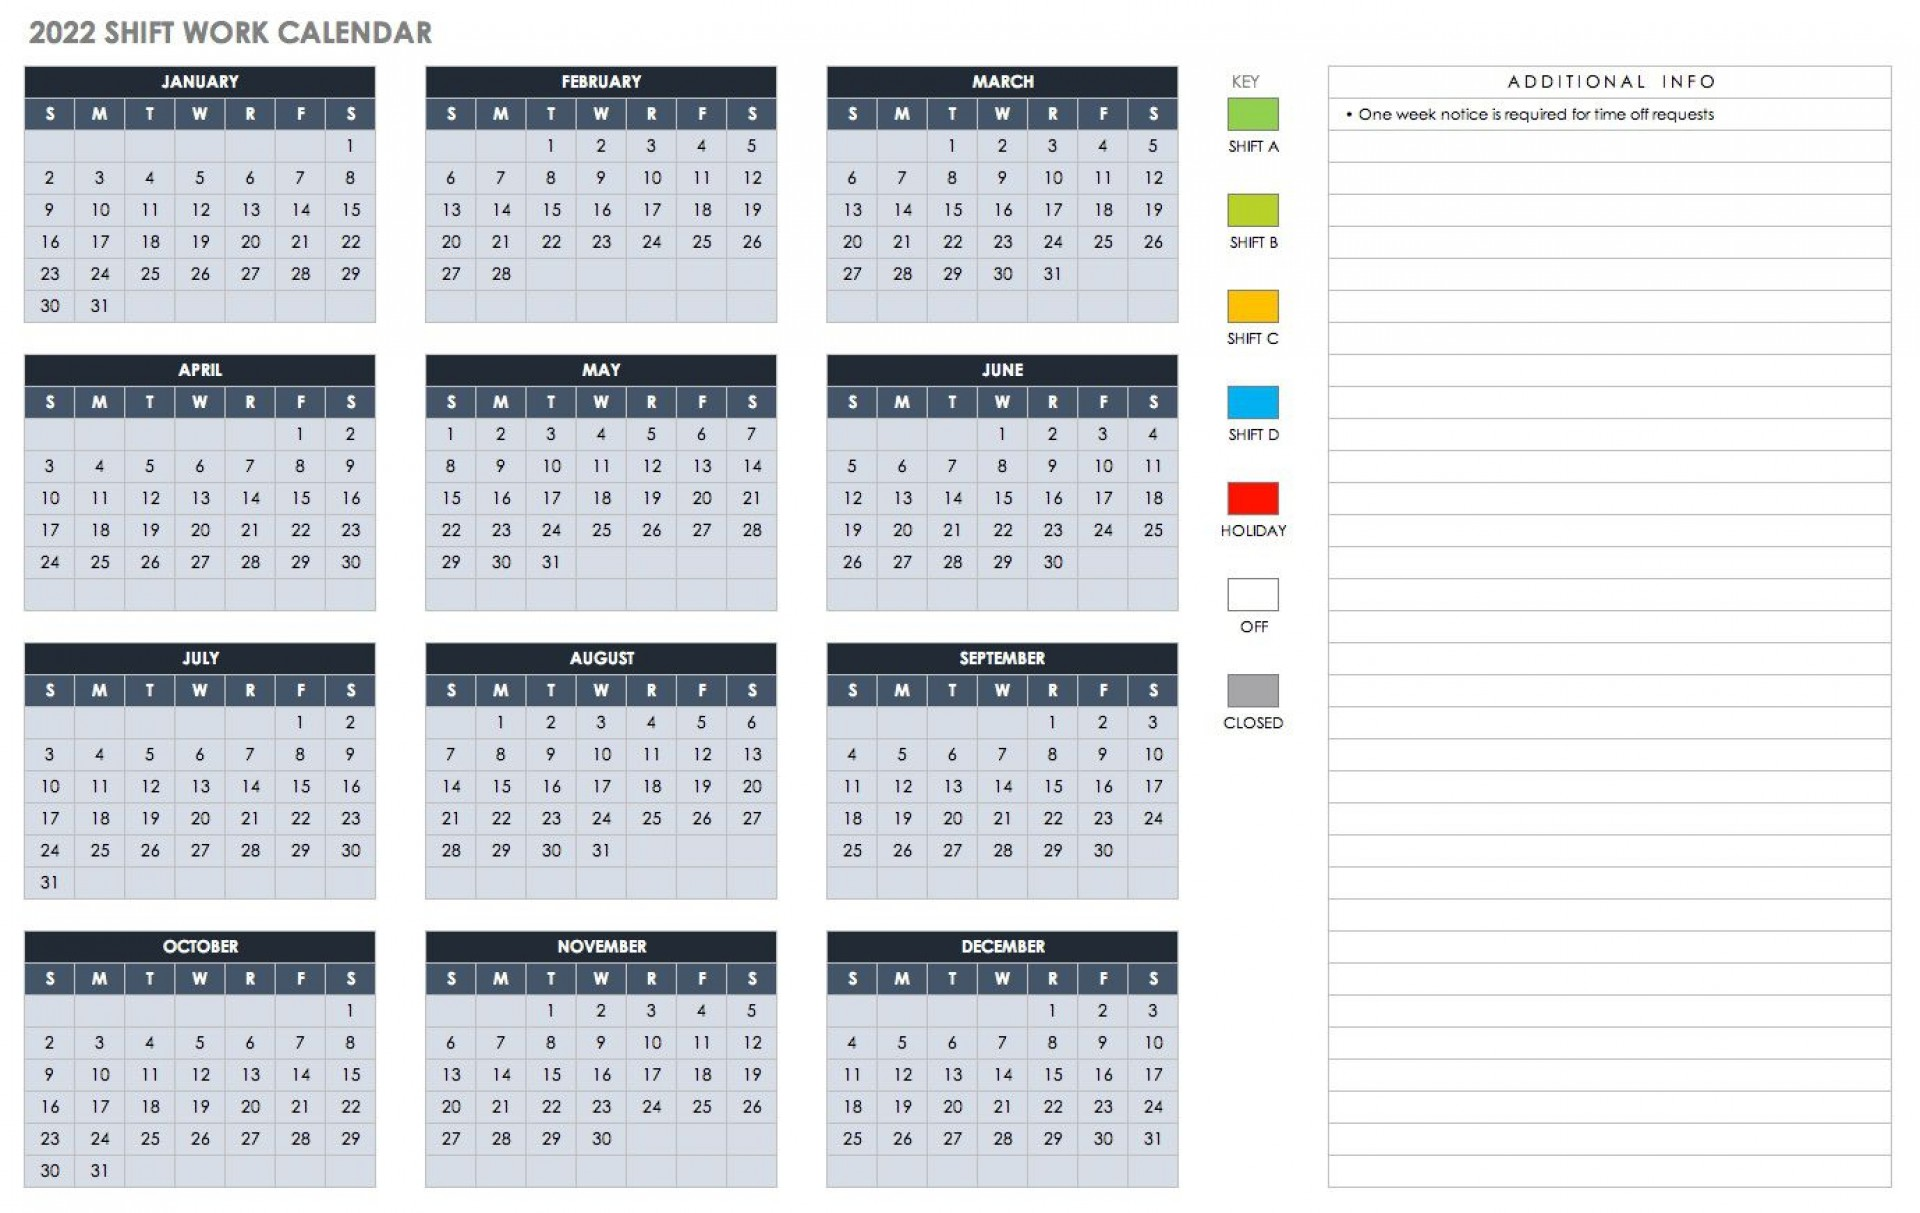 008 Archaicawful 2020 Yearly Calendar Template Image  Word Uk1920